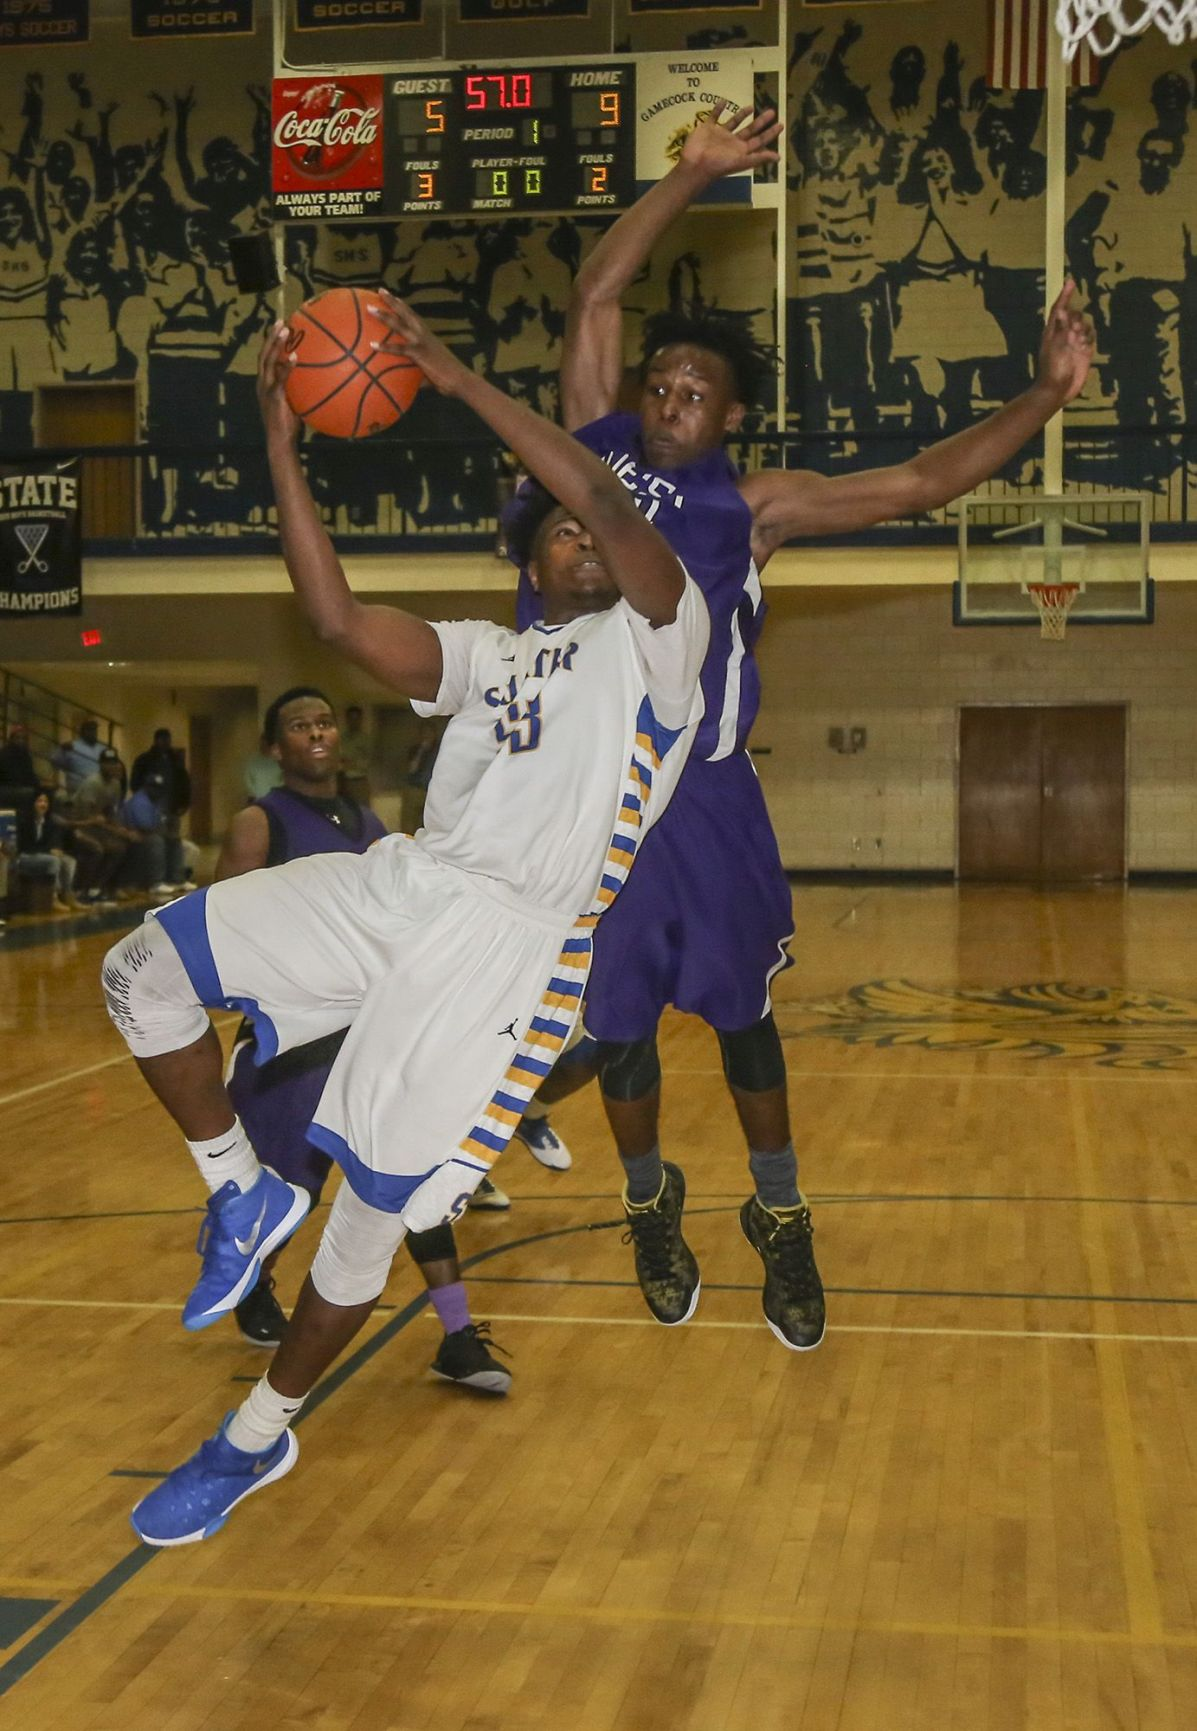 West Ashley surprises Sumter in 2nd round